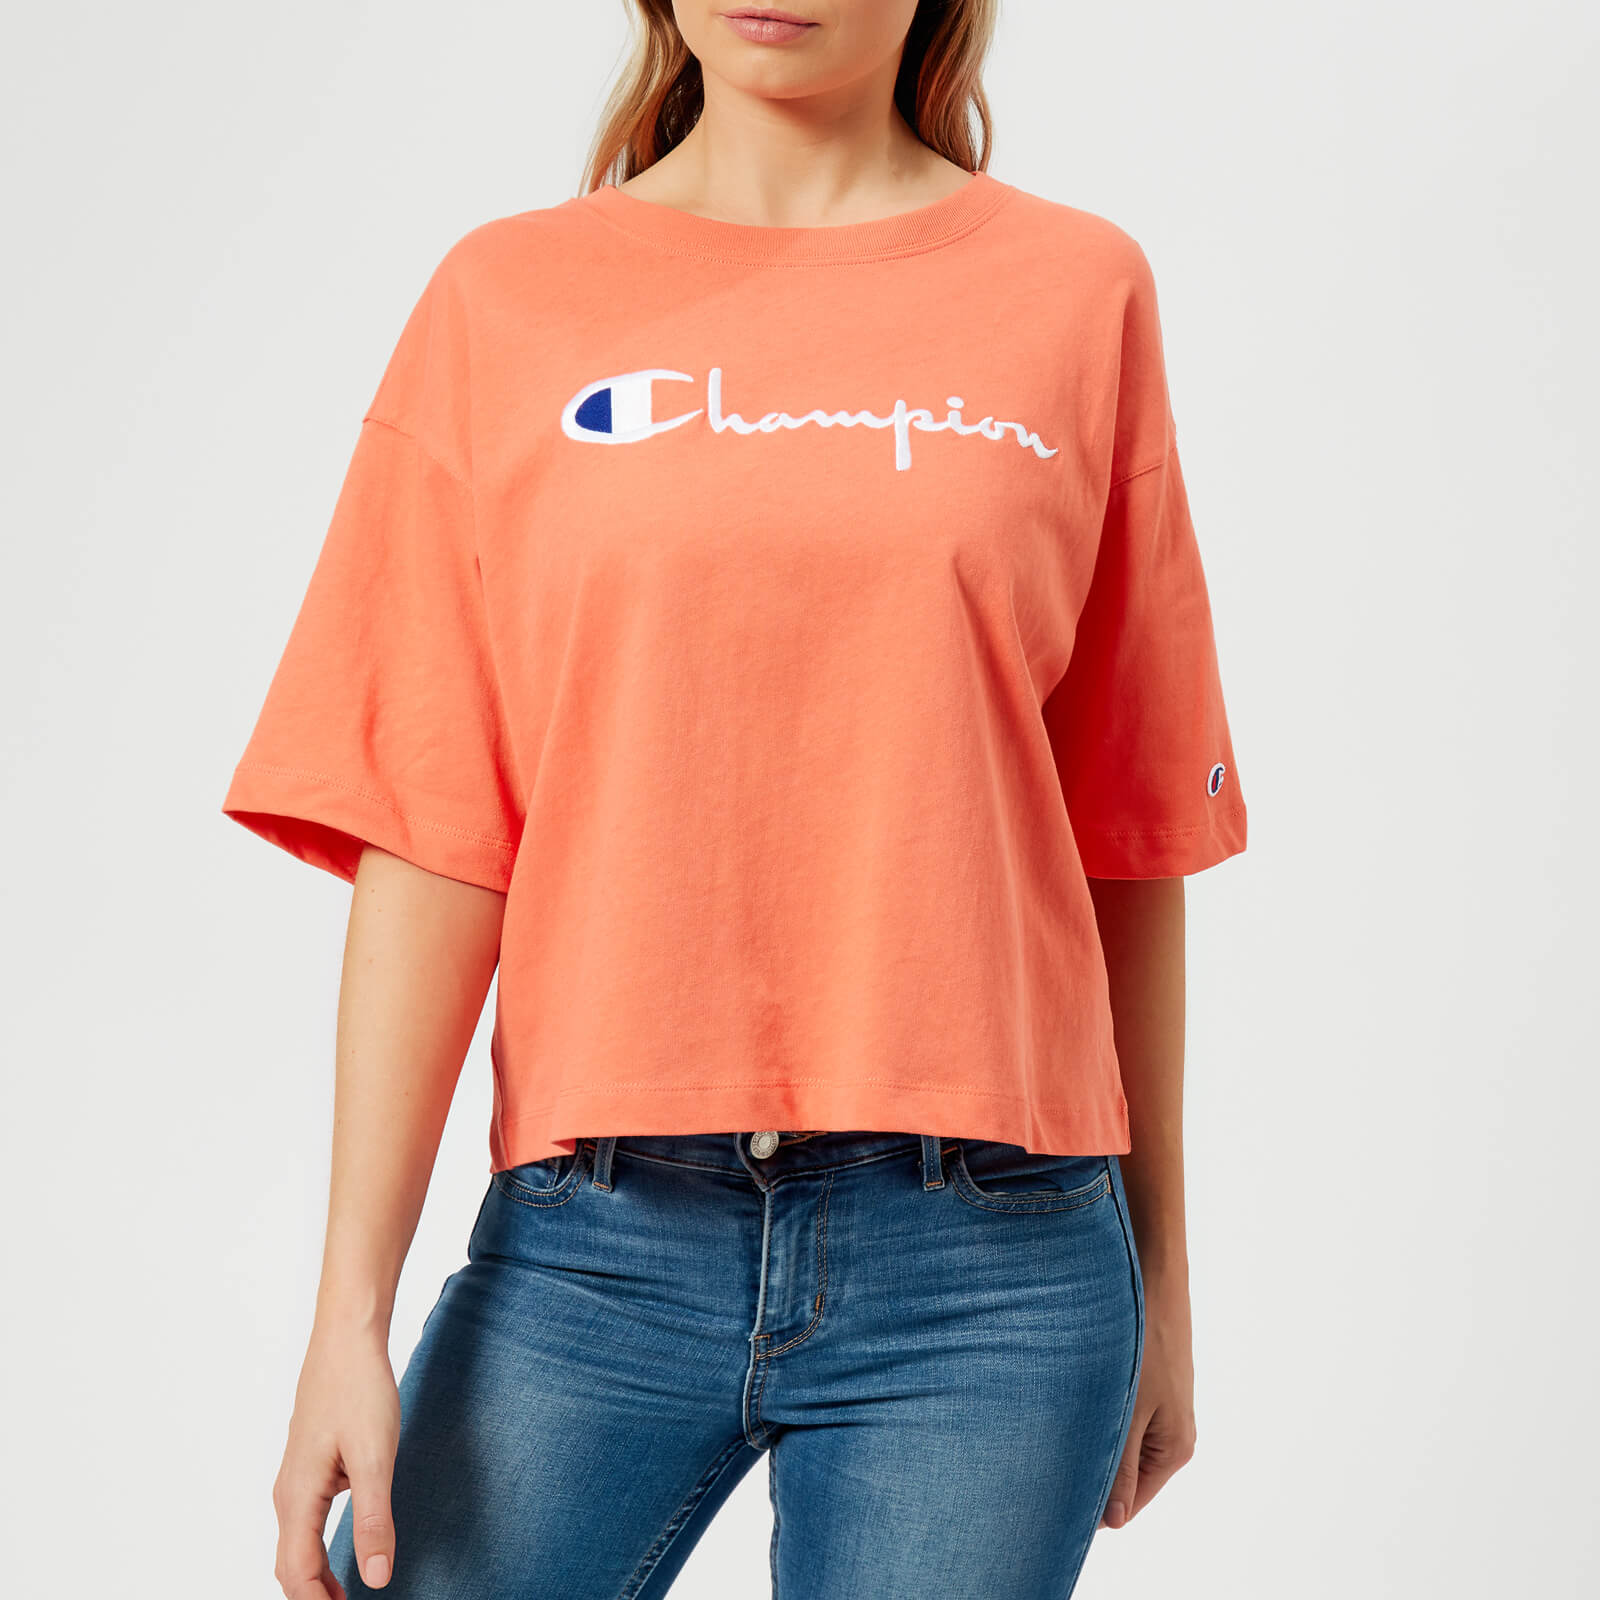 b2d9af2ddc94 Champion Women's Maxi T-Shirt - Orange - Free UK Delivery over £50